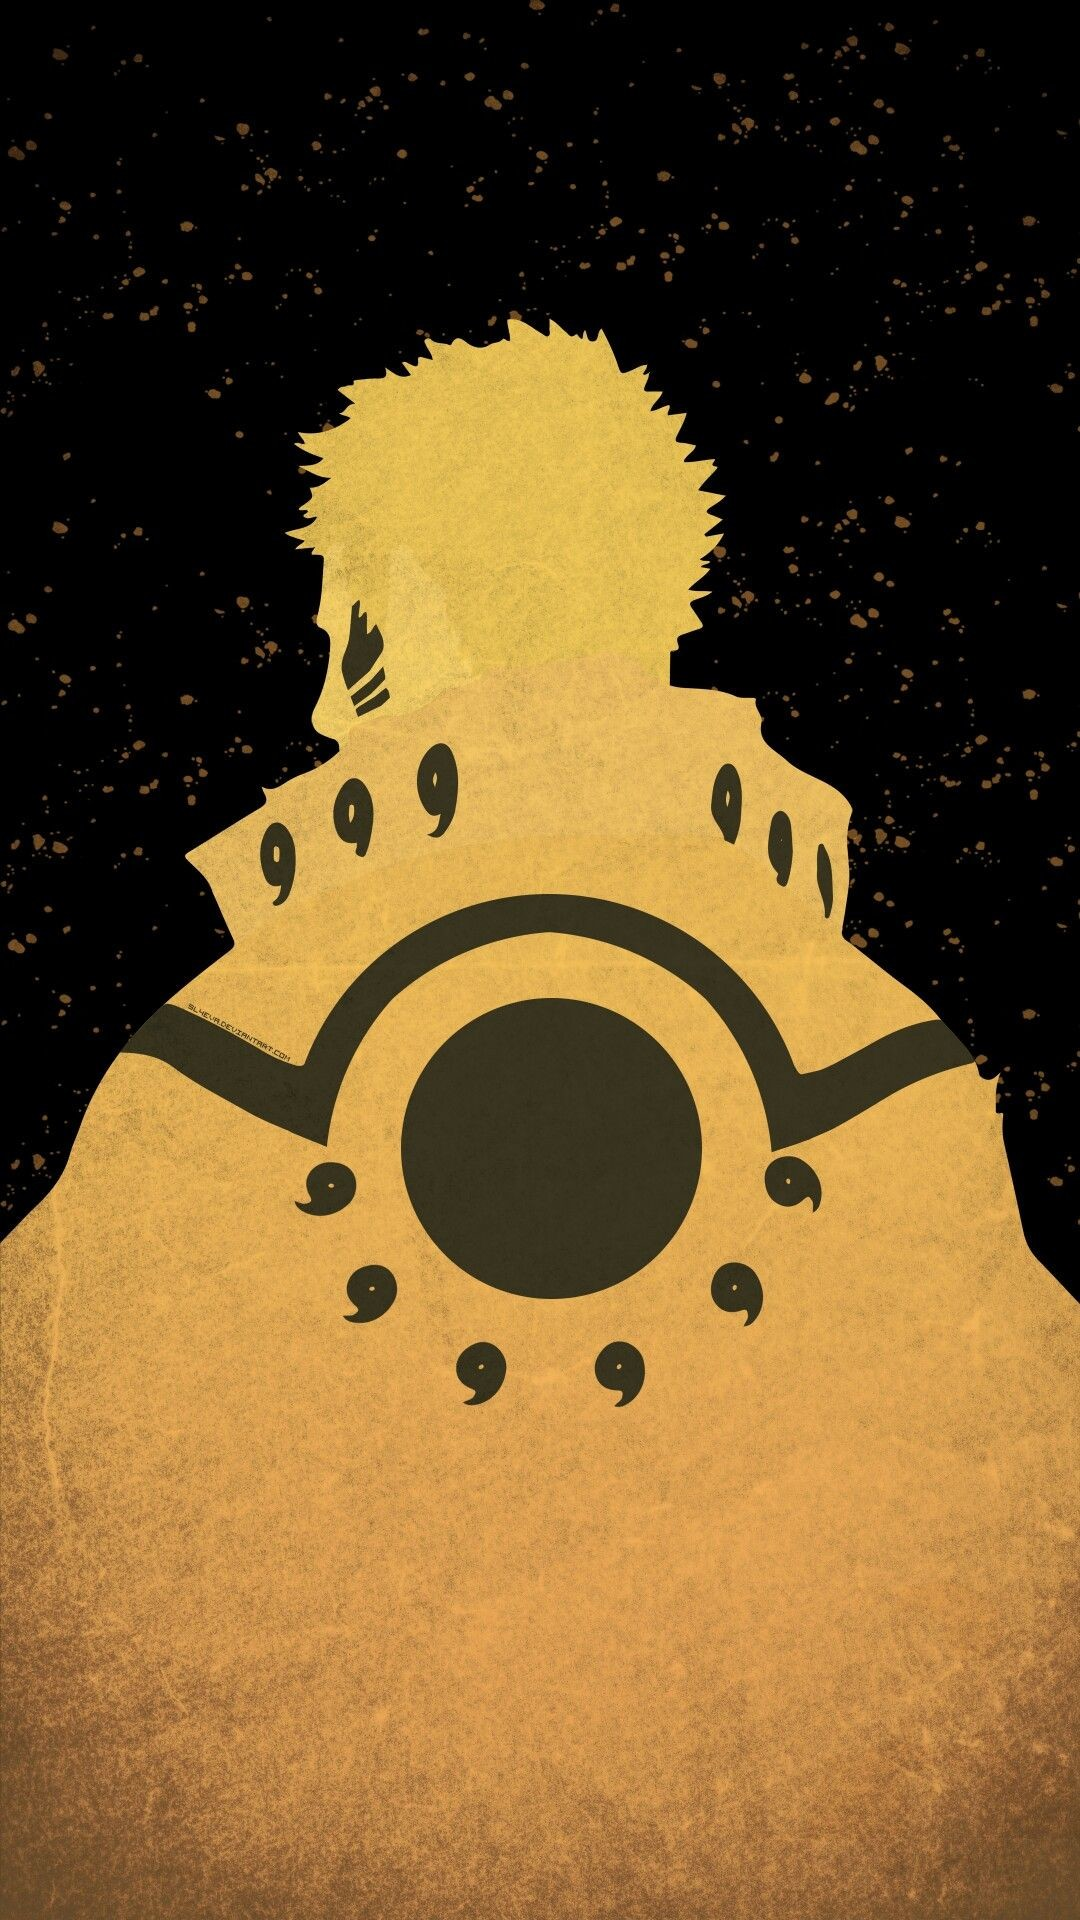 Naruto Wallpaper iphone 6 07 1080 x 1920